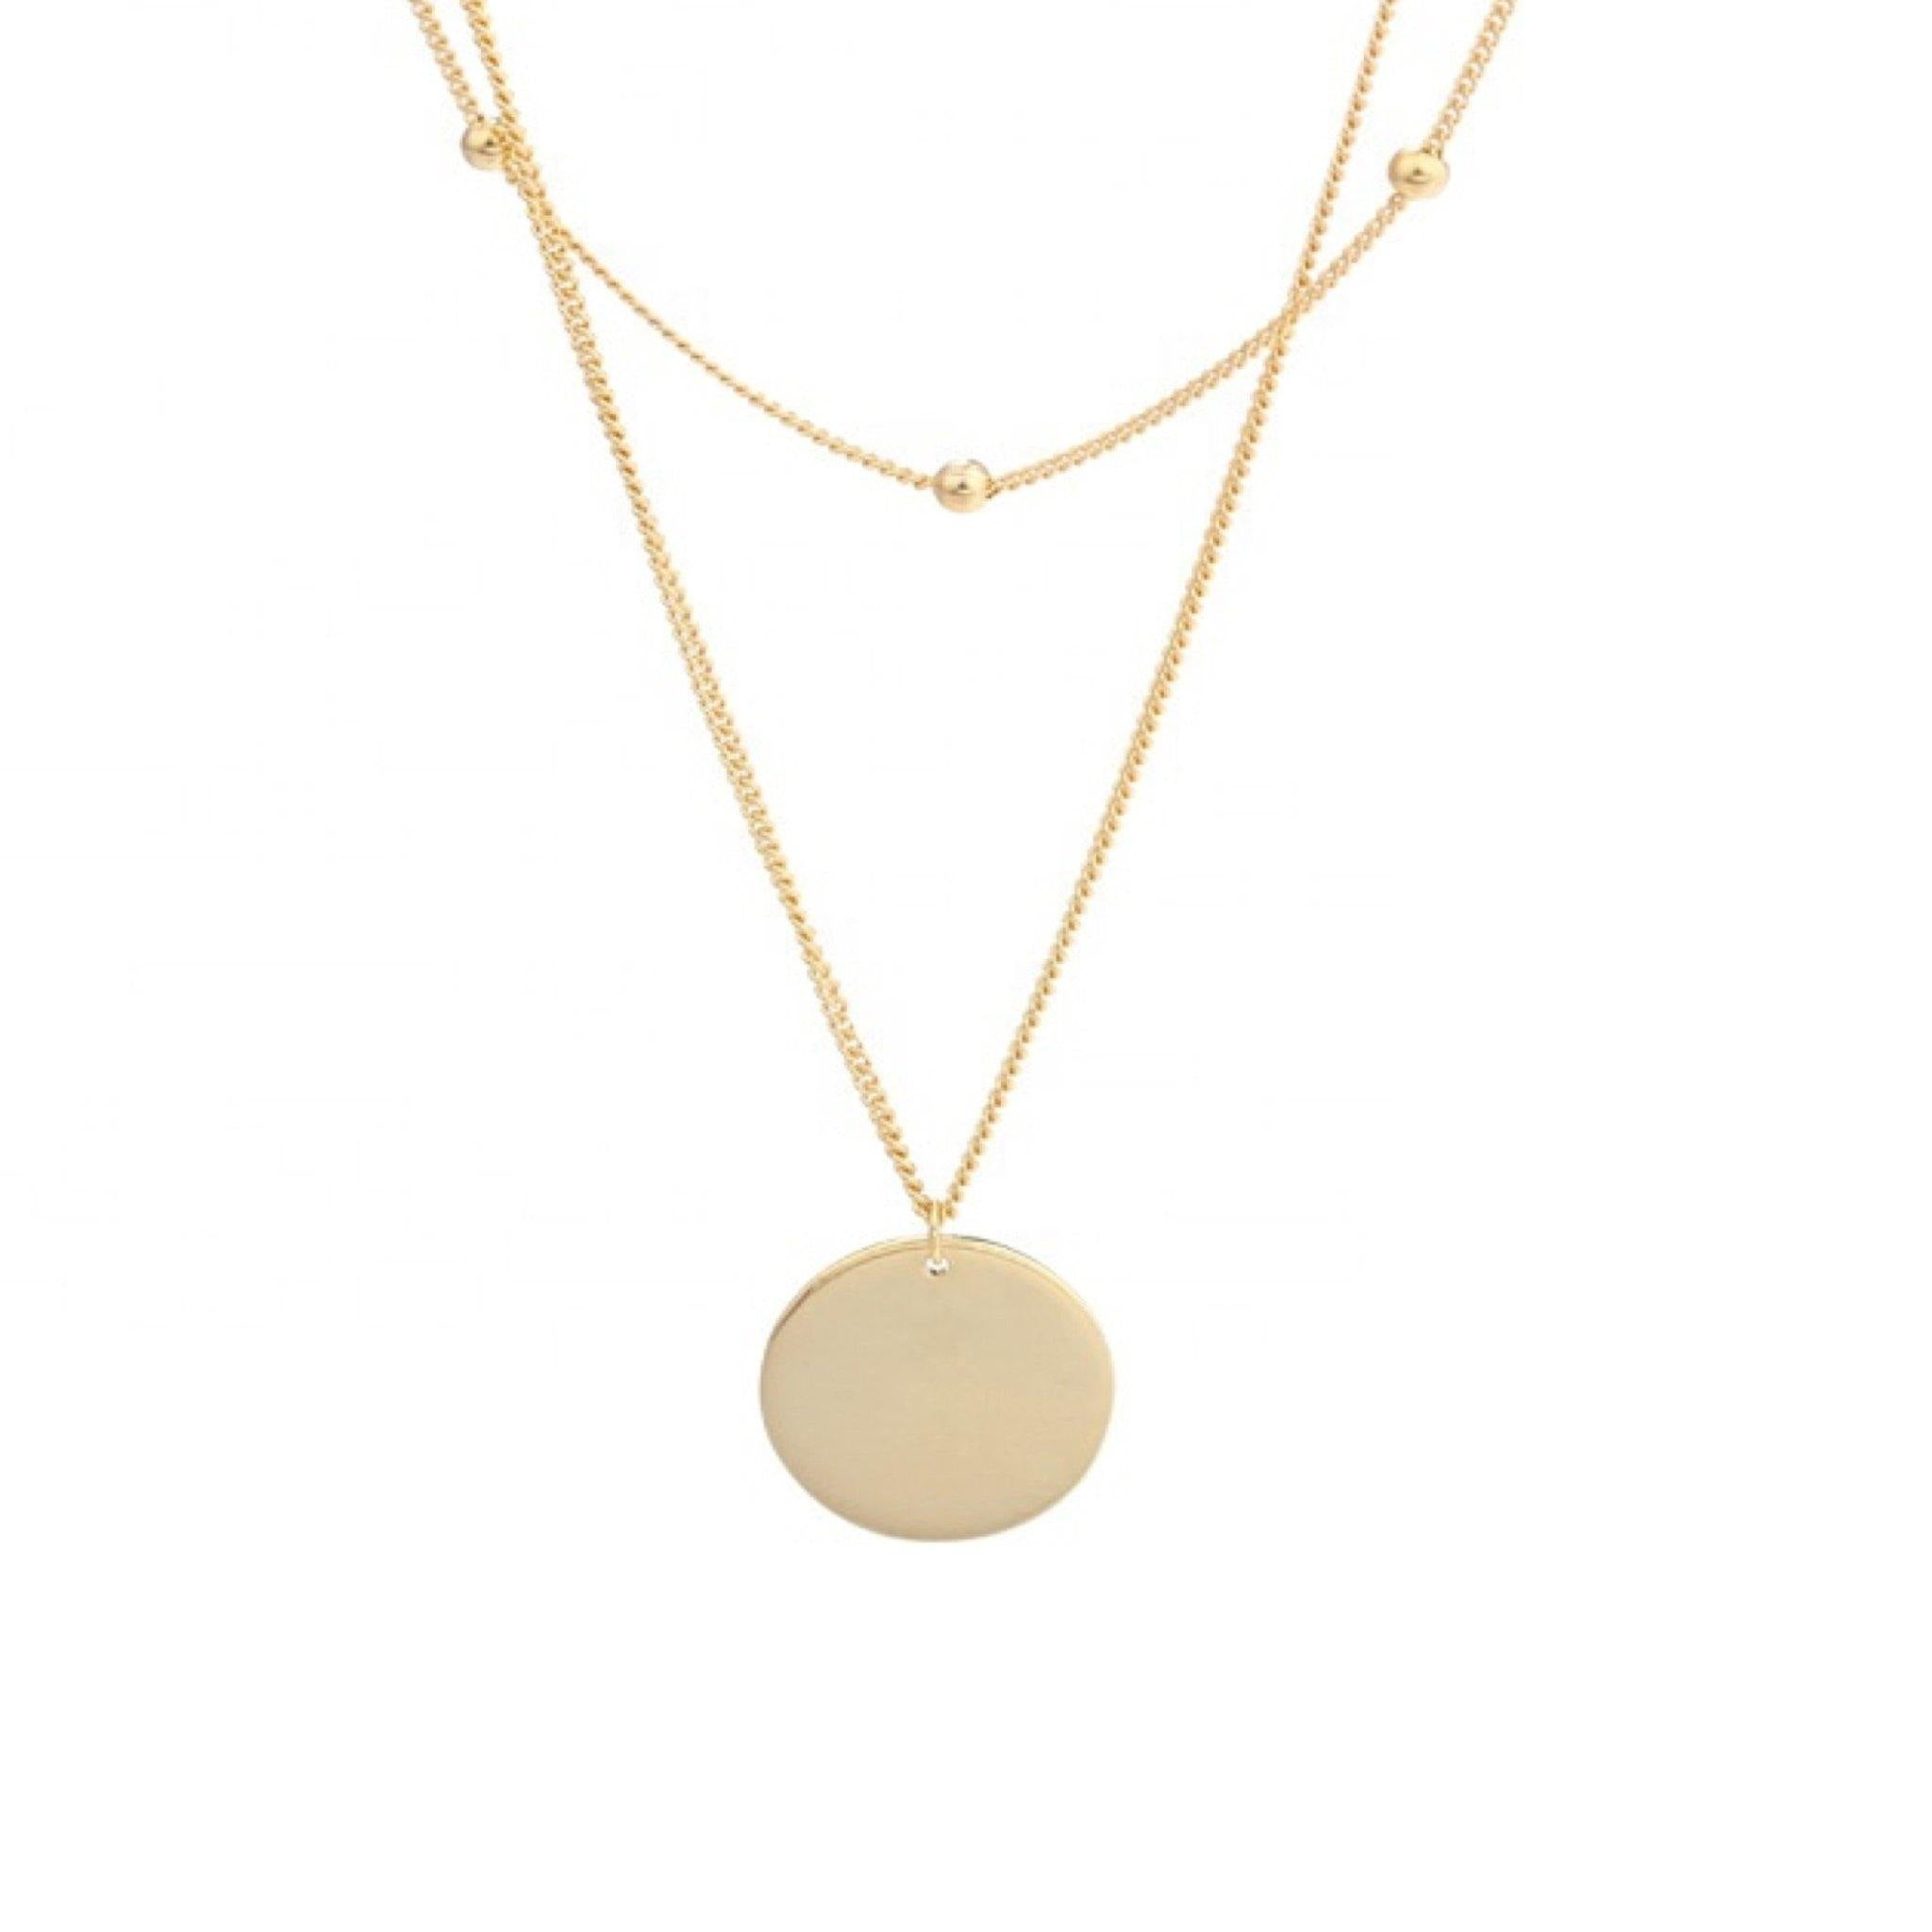 Carter Layered Necklace - Taylor Adorn